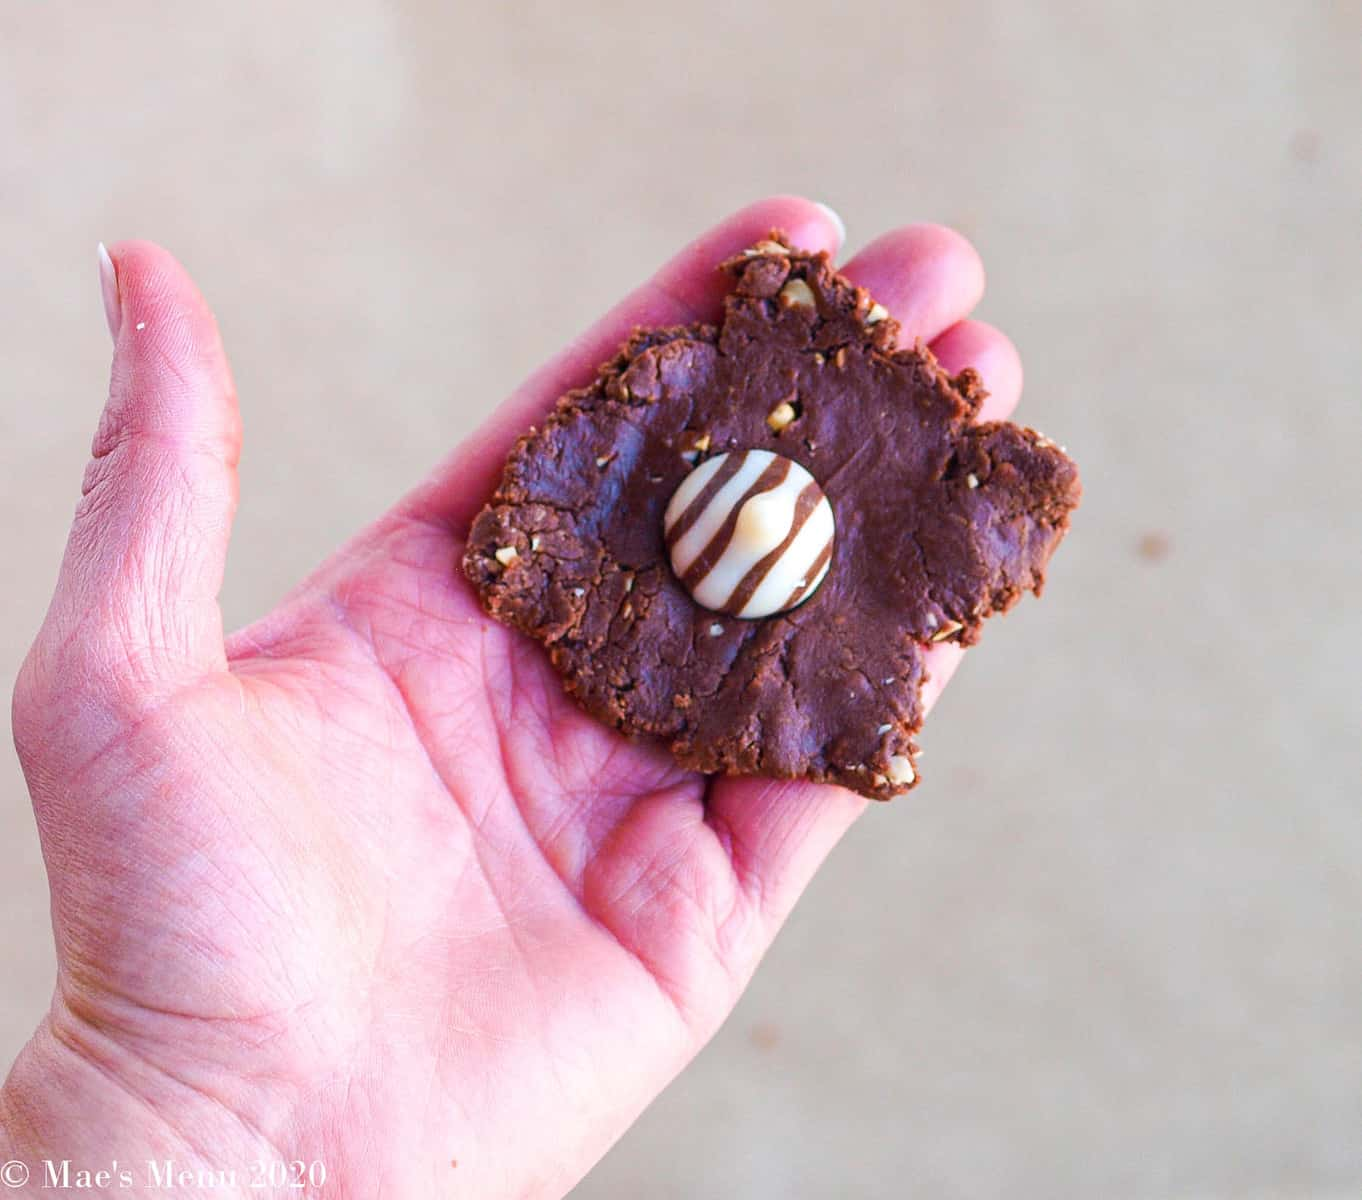 A hand holding a disc of cookie dough with a Hershey's hug on top of it